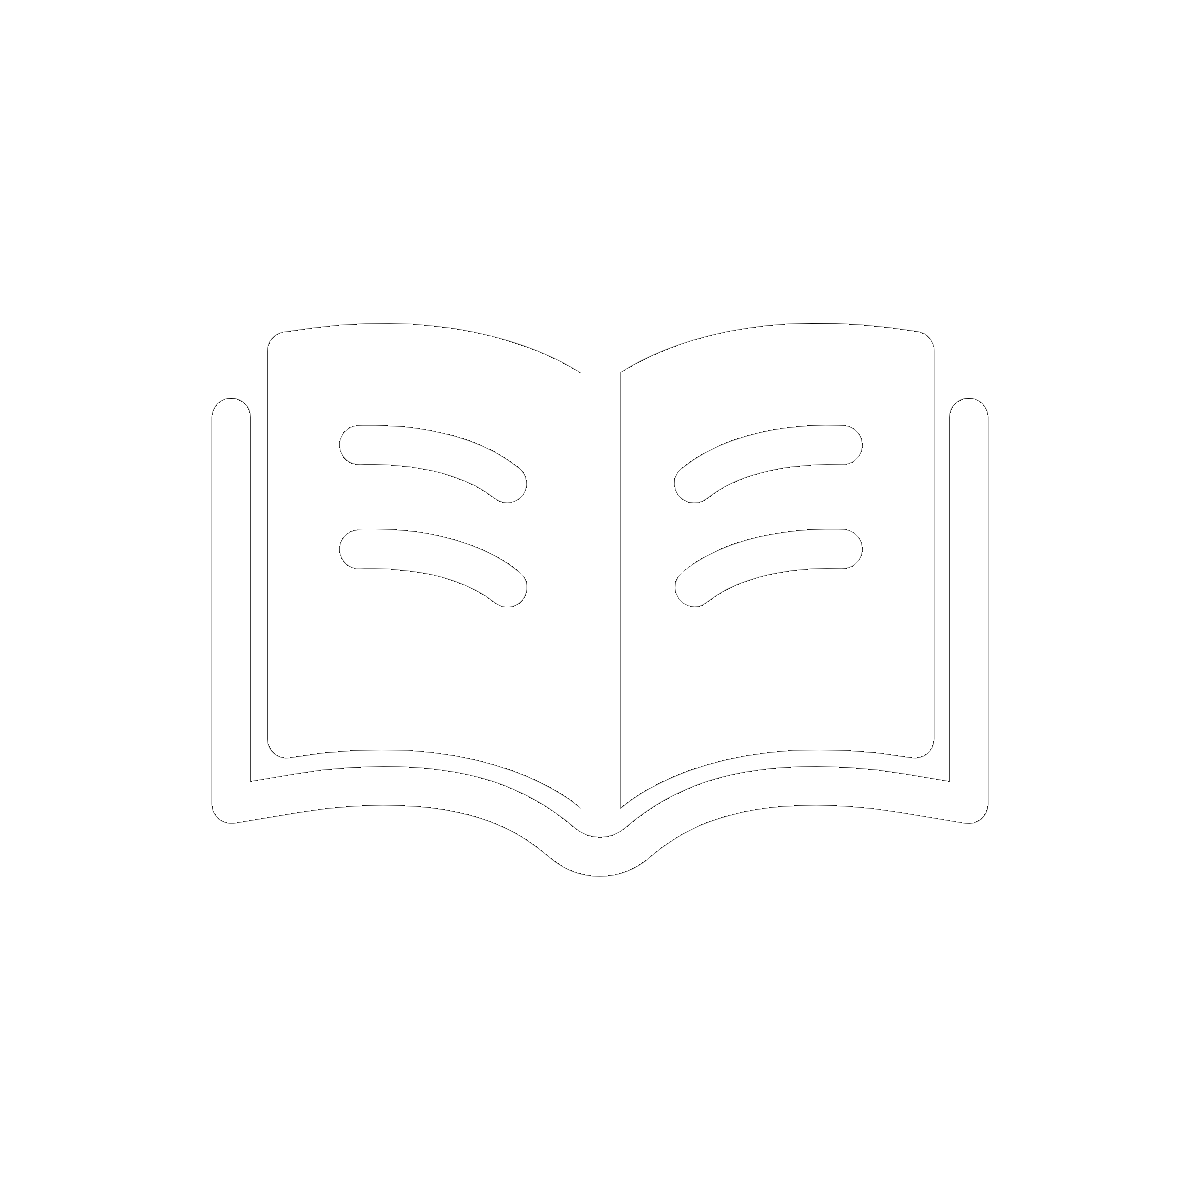 Symbol The Book of Myths